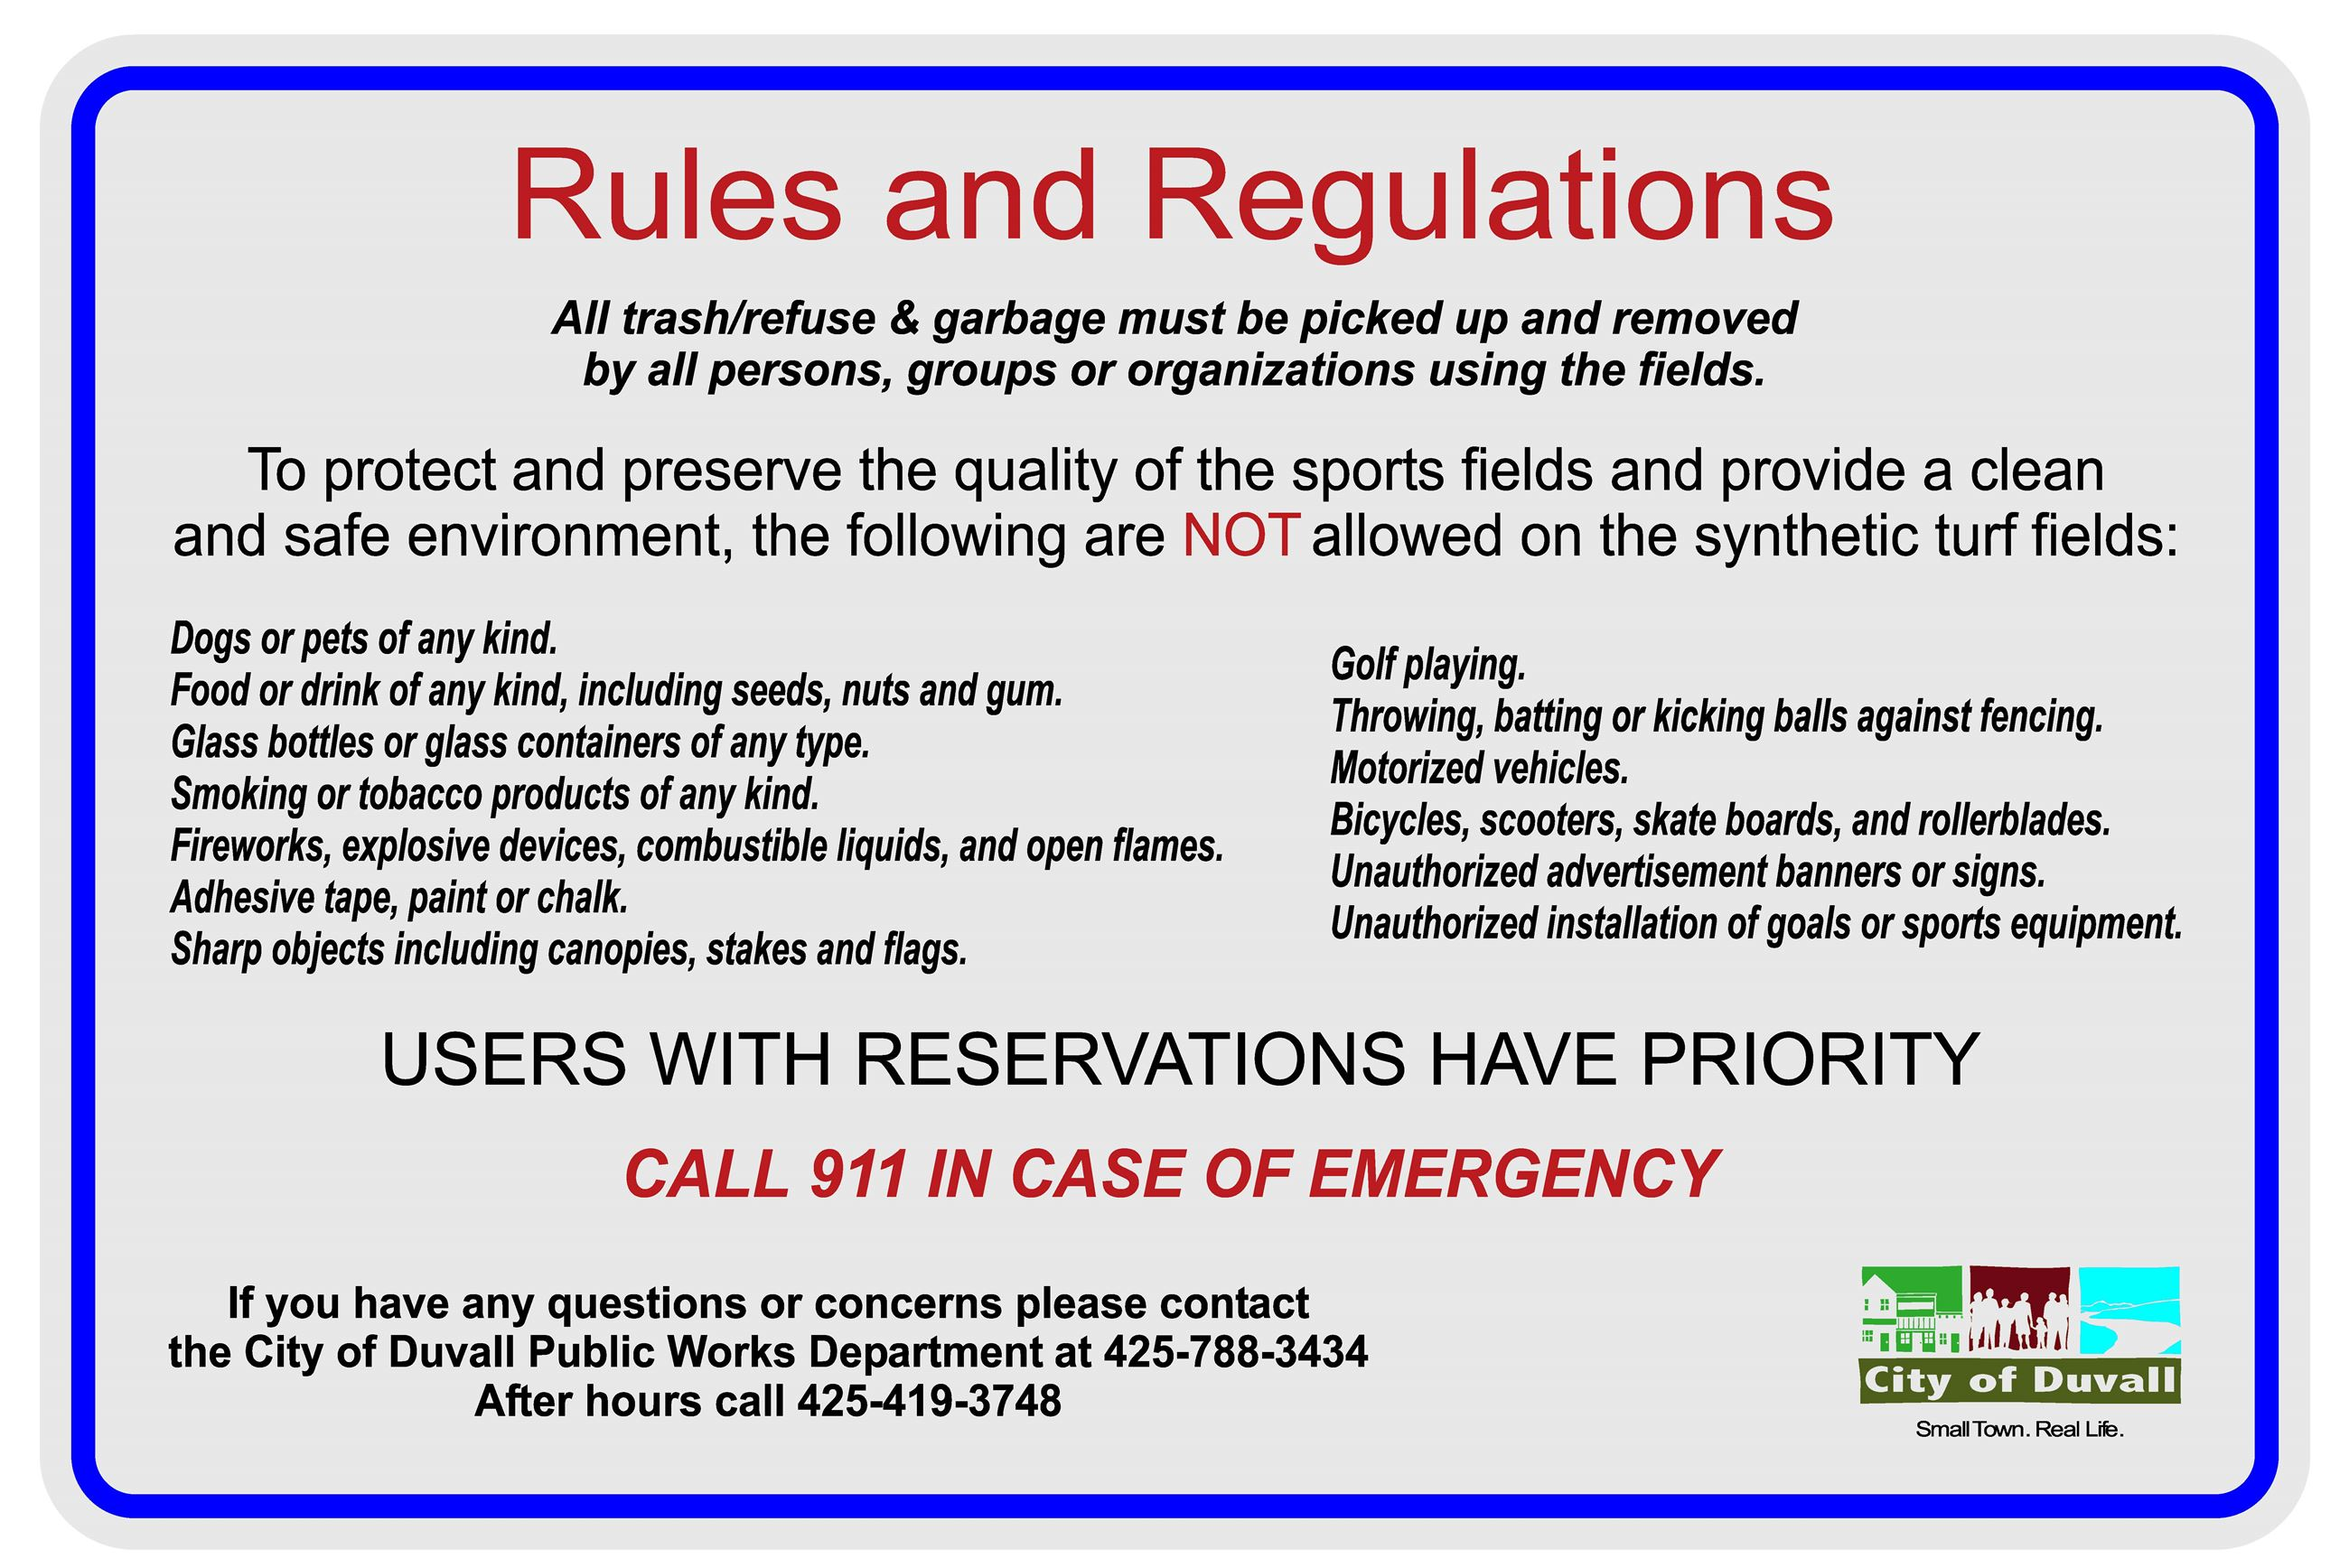 Big Rock Ballfields Rules and Regulations